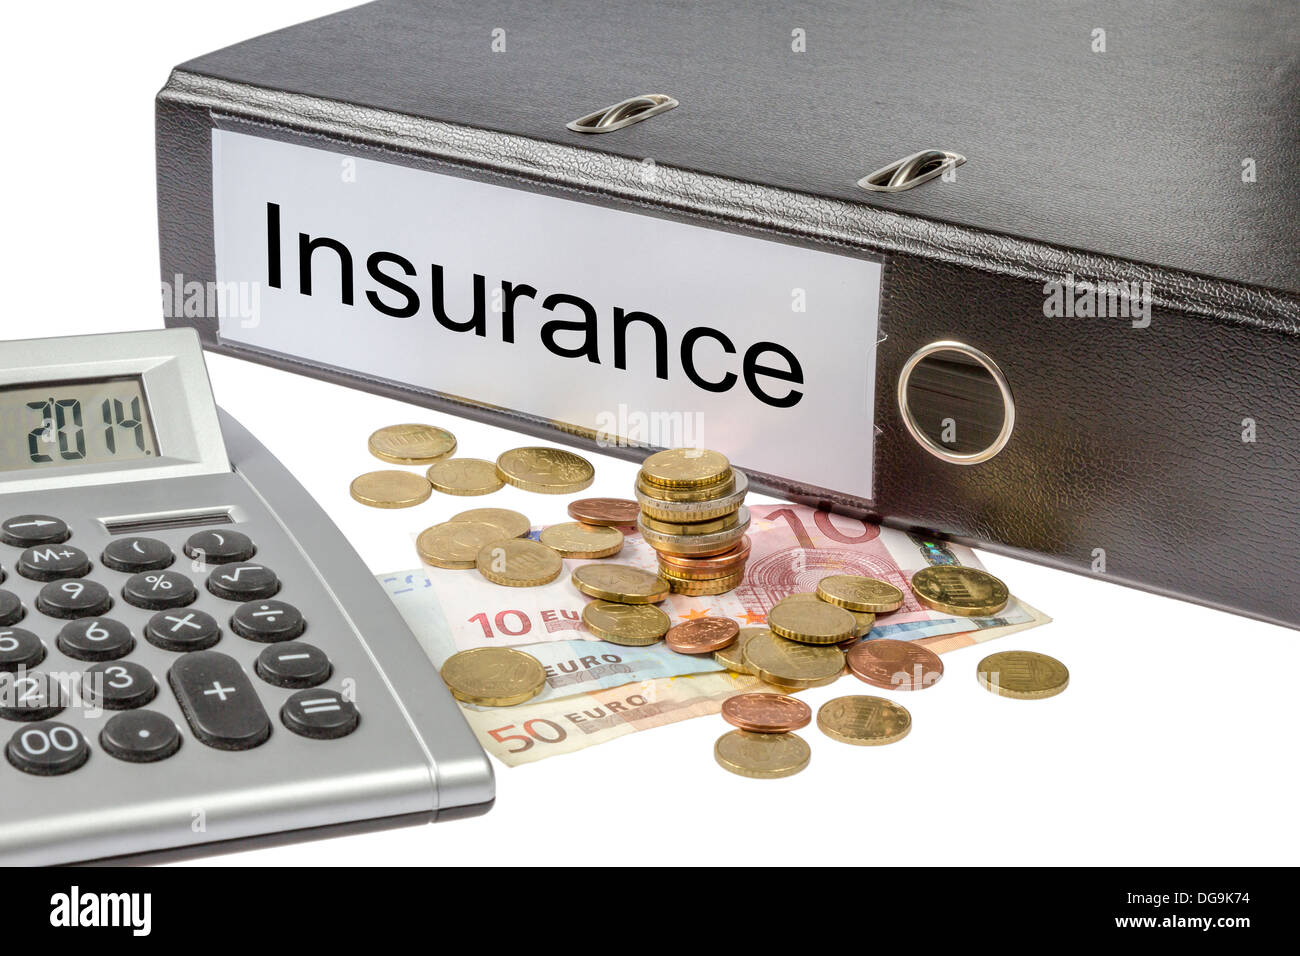 A Binder labeled wit the word insurance, calculator and european currency isolated on white background Stock Photo